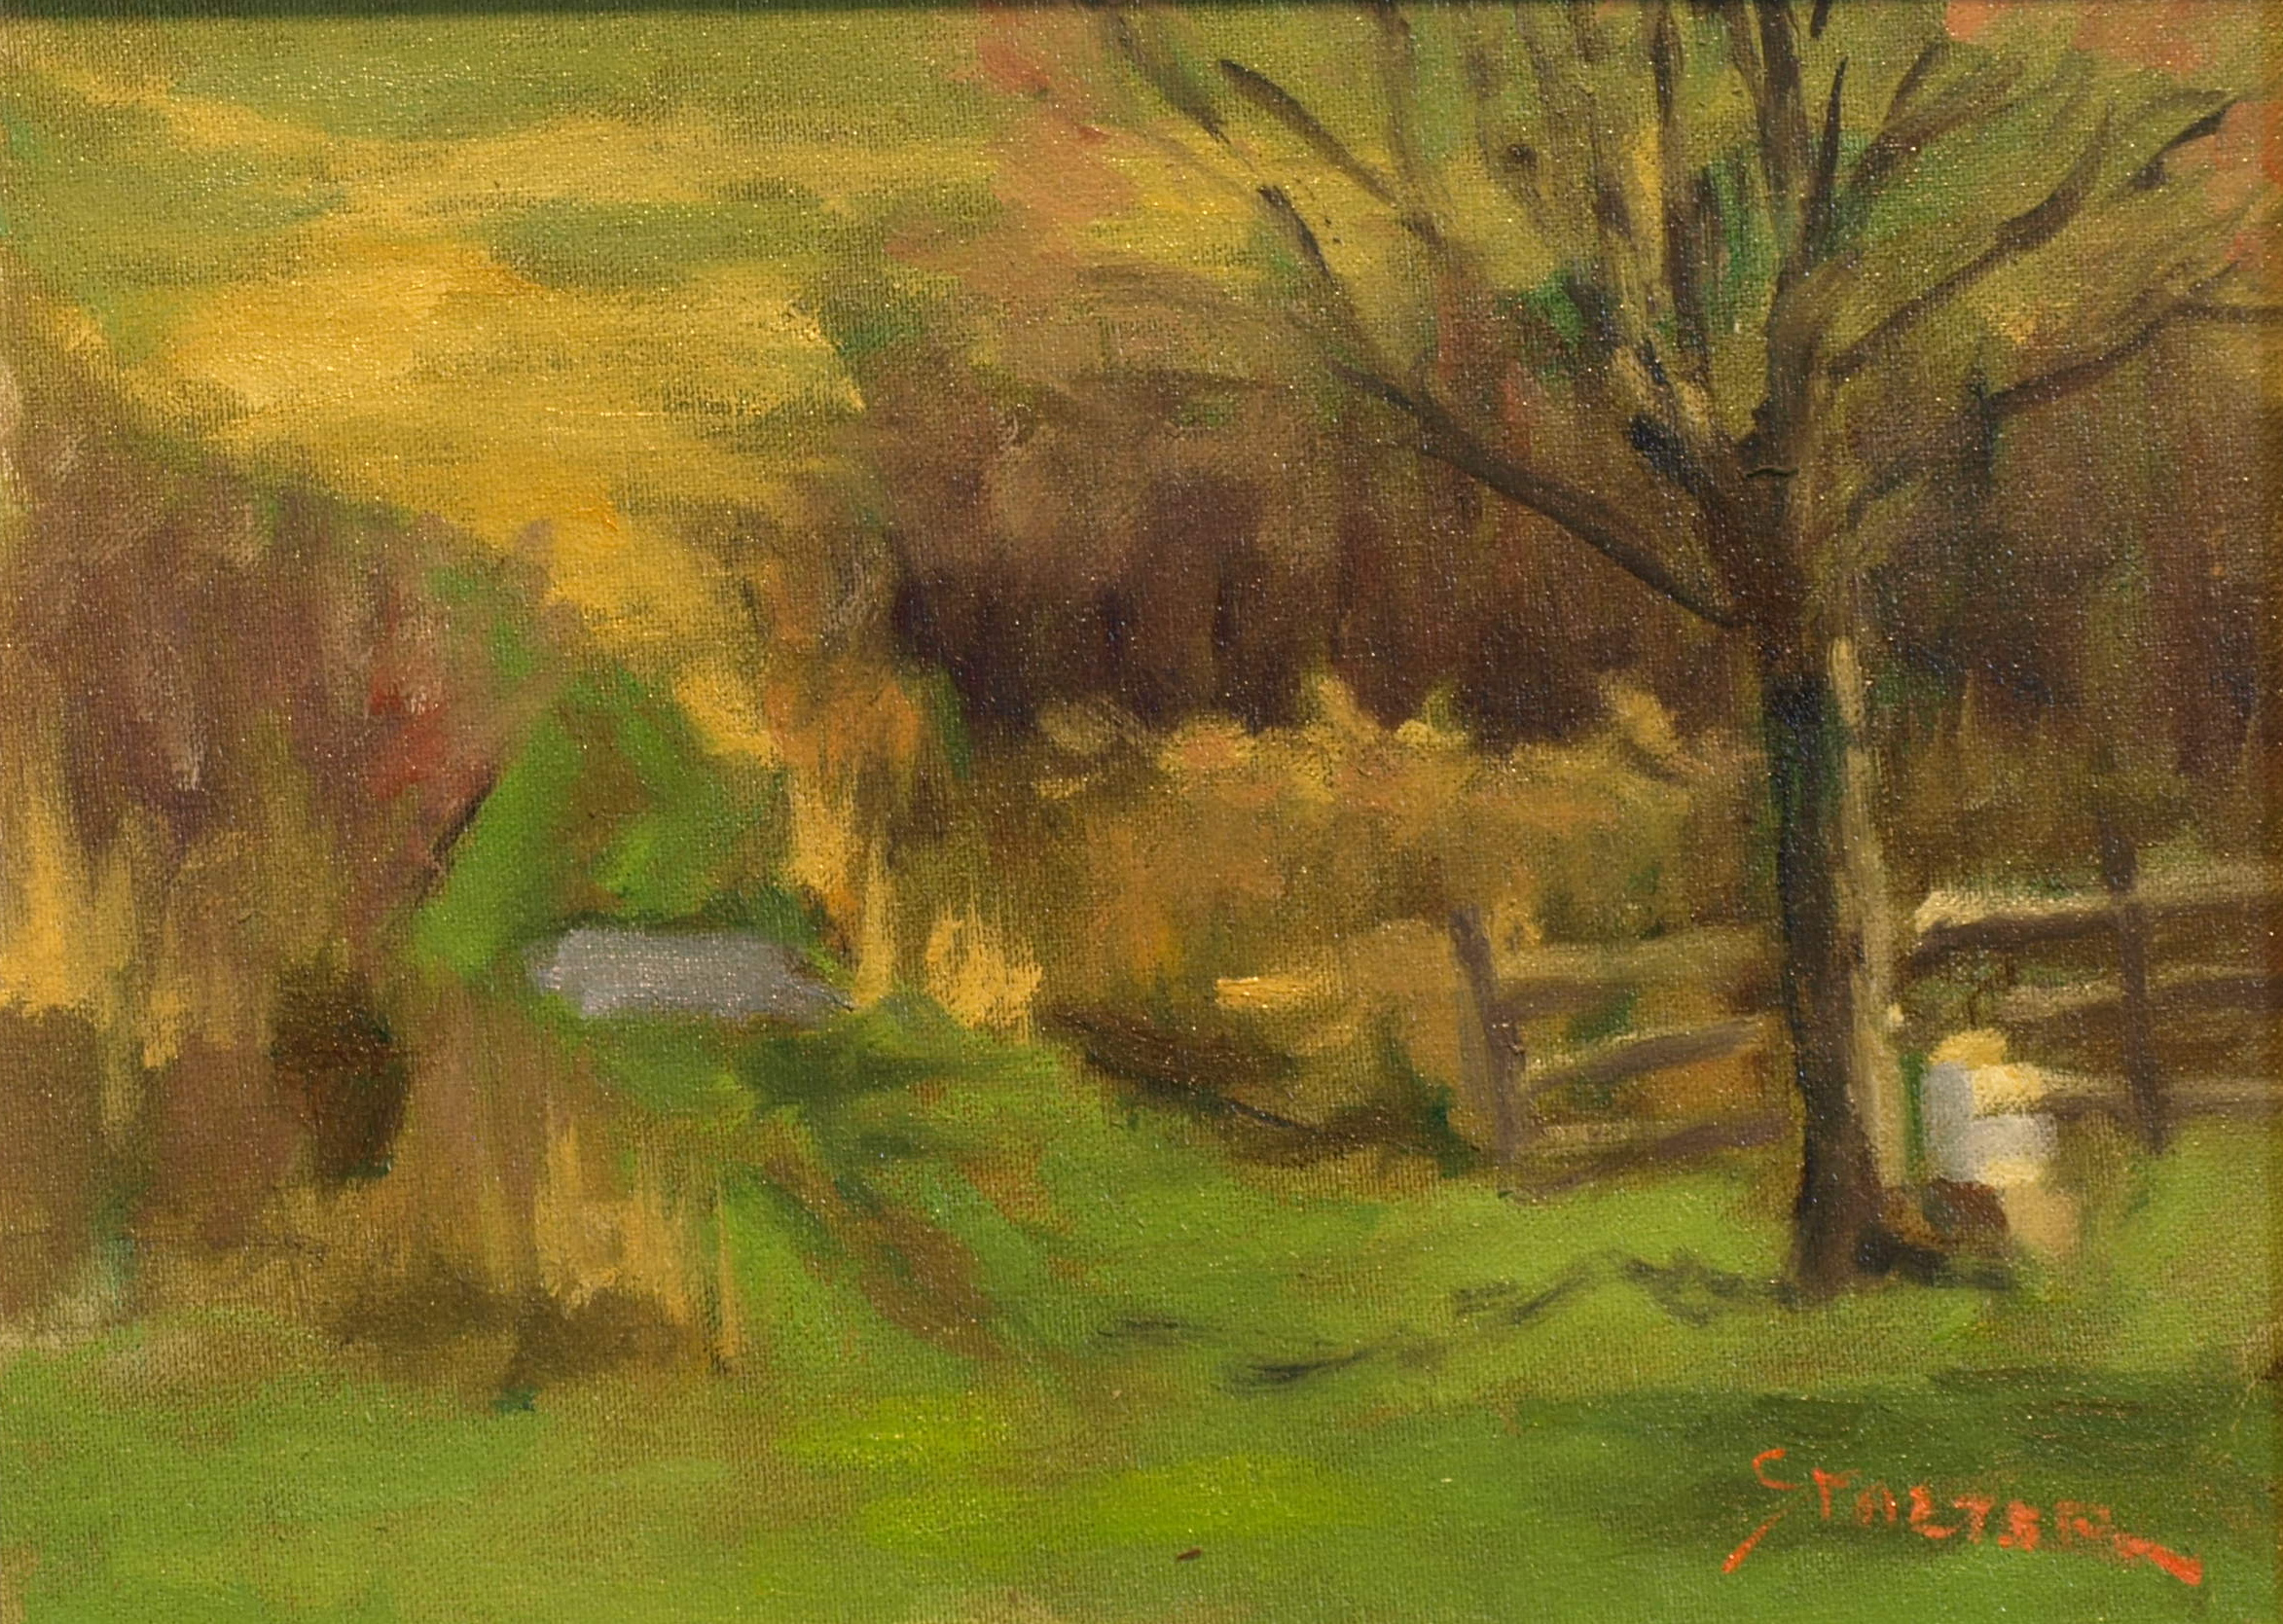 Bee Hive, Oil on Canvas on Panel, 9 x 12 Inches, by Richard Stalter, $220